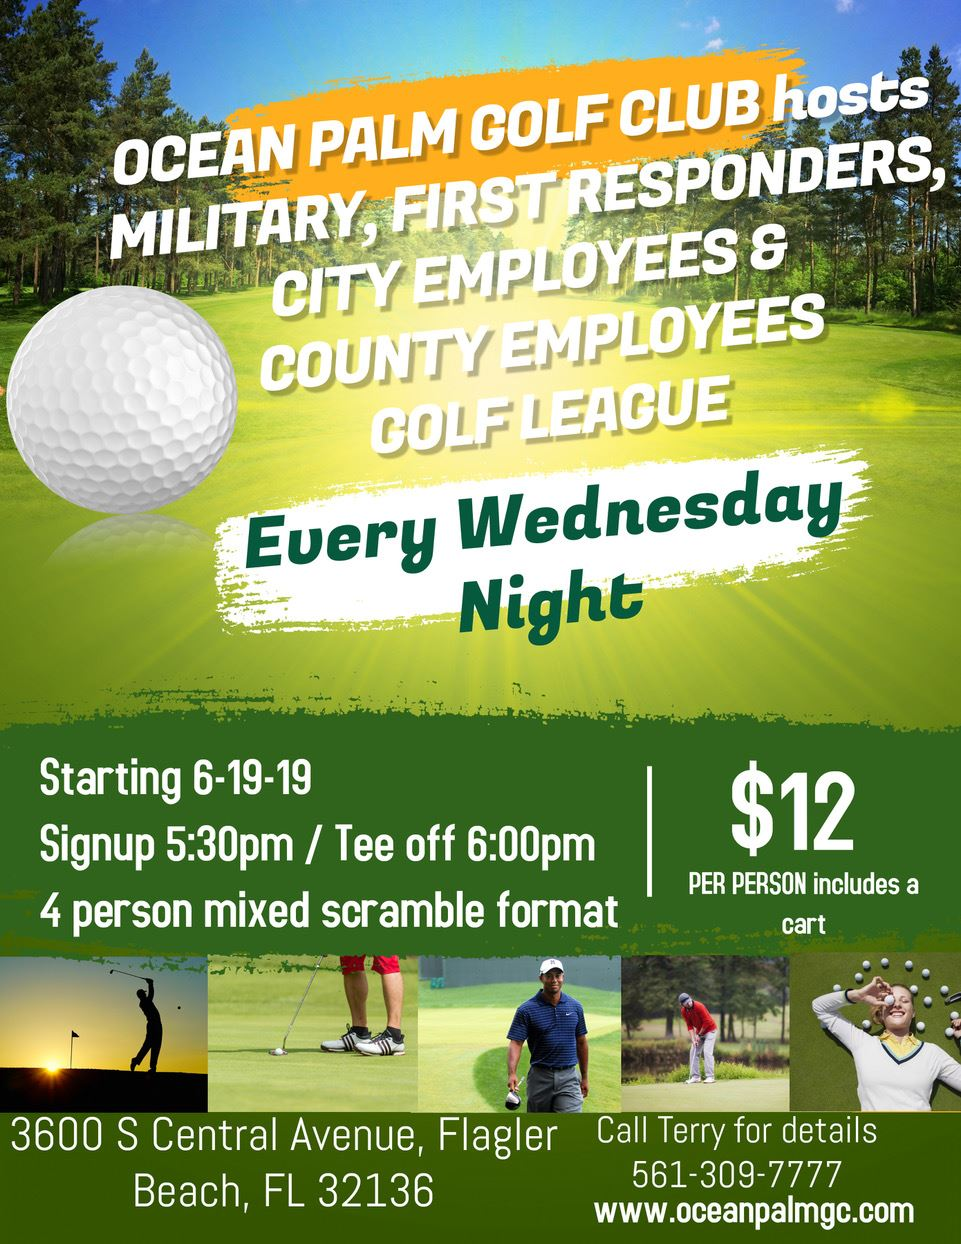 Golf League to honor military, first responders and city and county employee personal at Ocean Palm